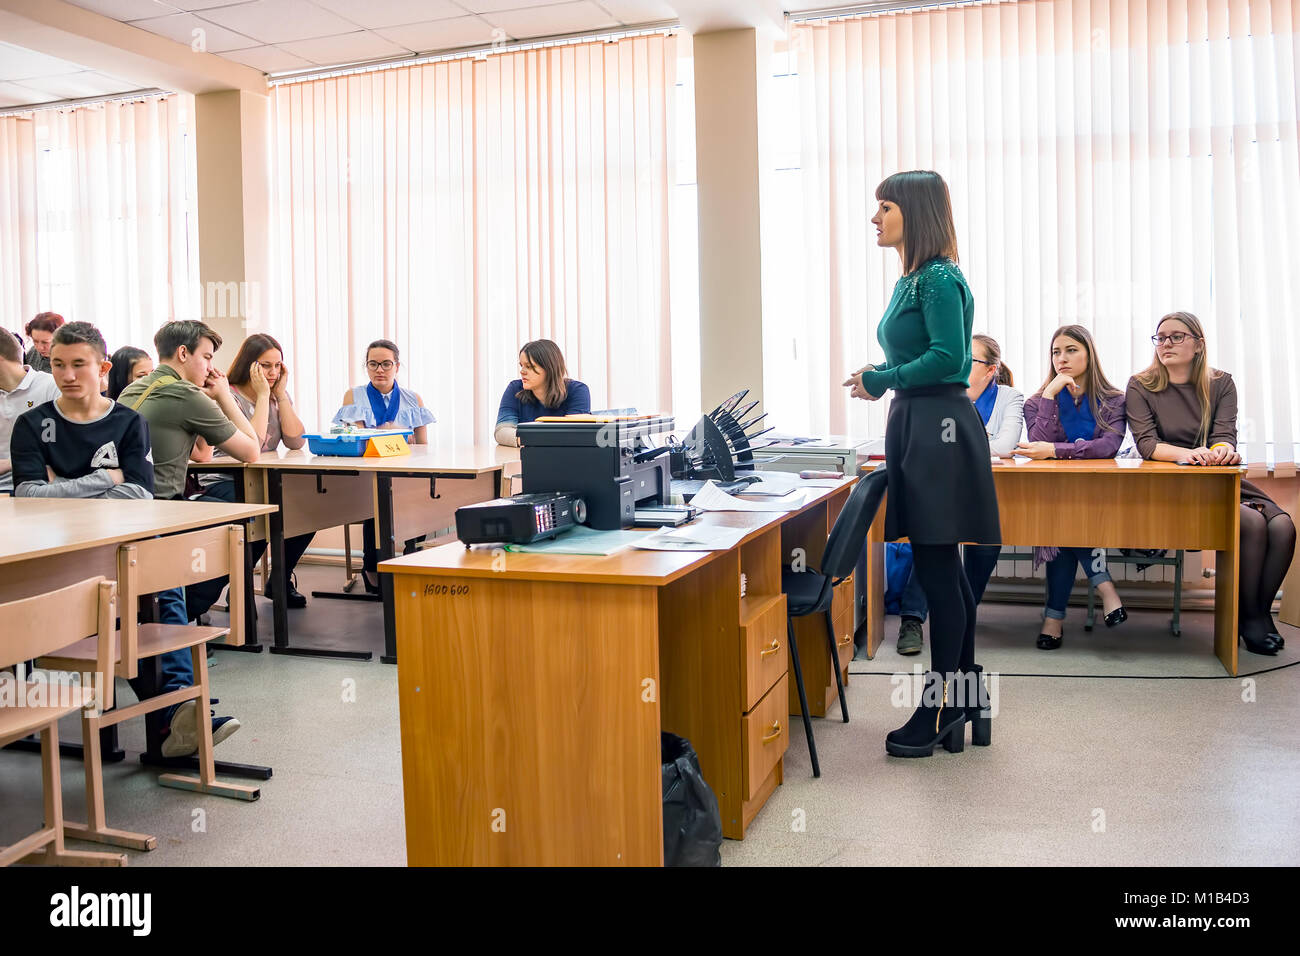 Students in the classroom with teacher - Stock Image